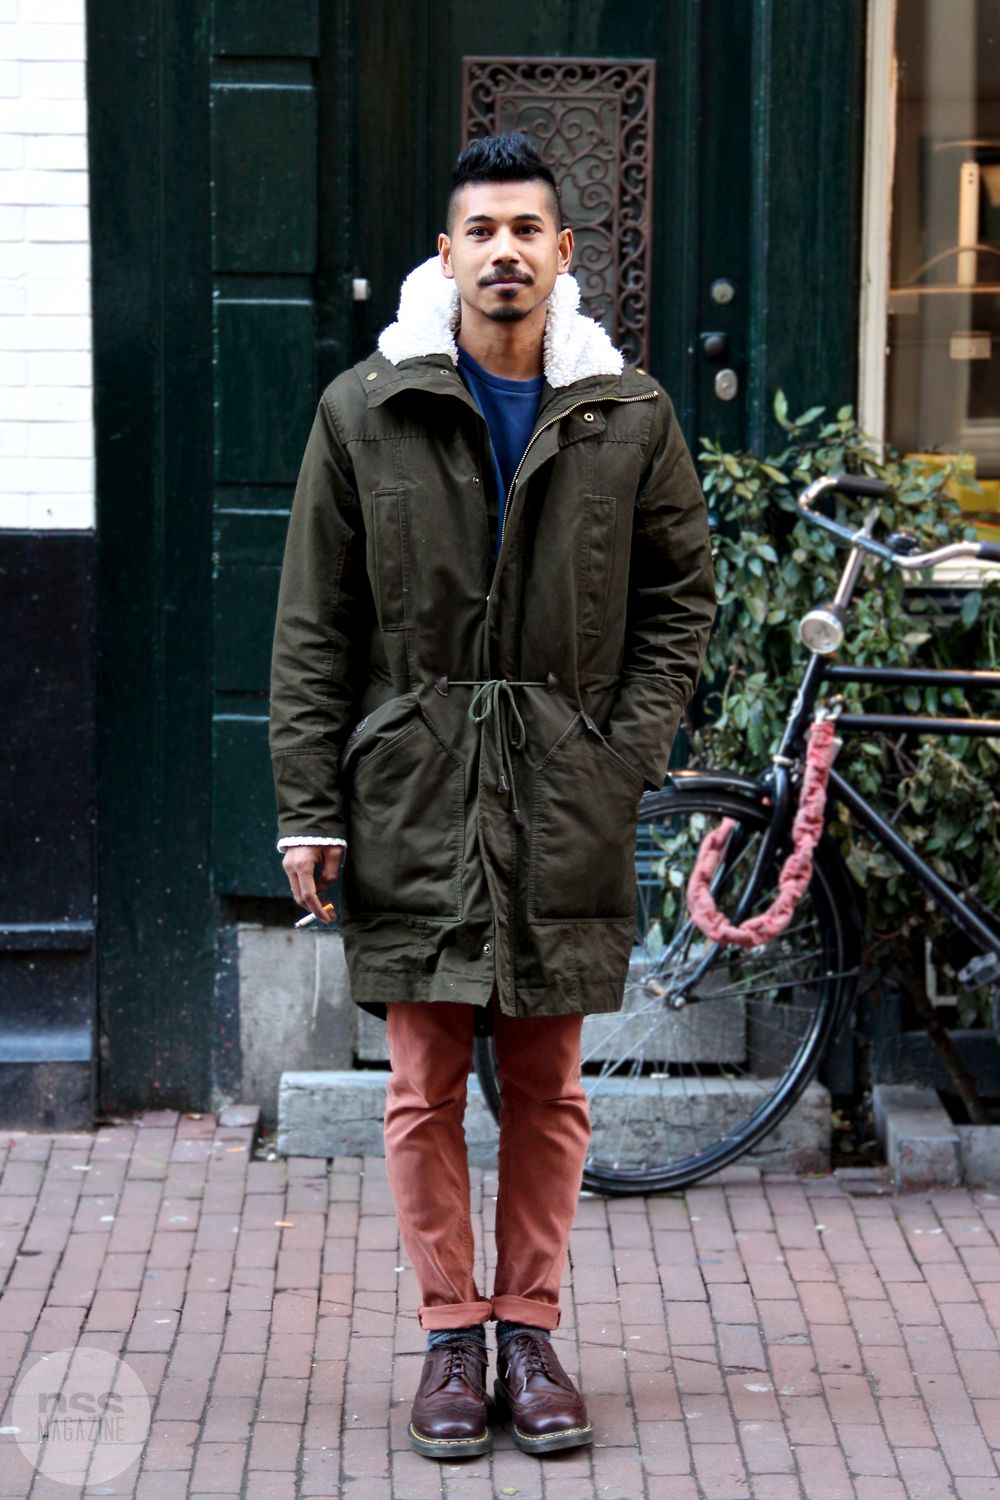 Streetstyle from Amsterdam, by Rasa Stankeviciute of FASHIONPOPULATION